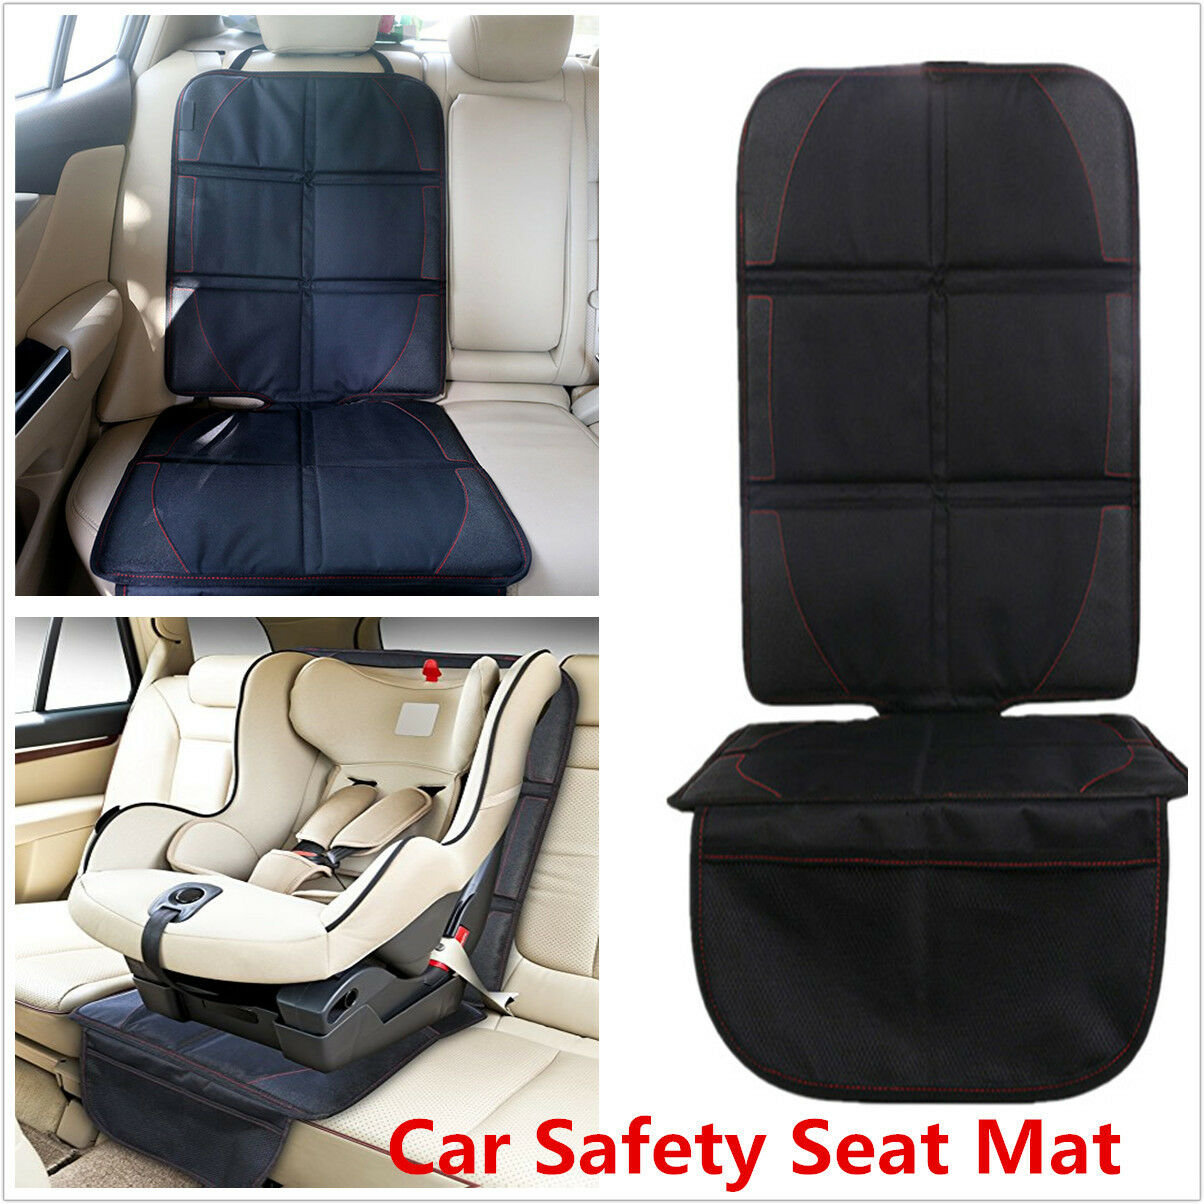 Waterproof Car Seat Protector Mat Baby Safety Cushion Pet Dog Back Blanket 1 Of 9FREE Shipping